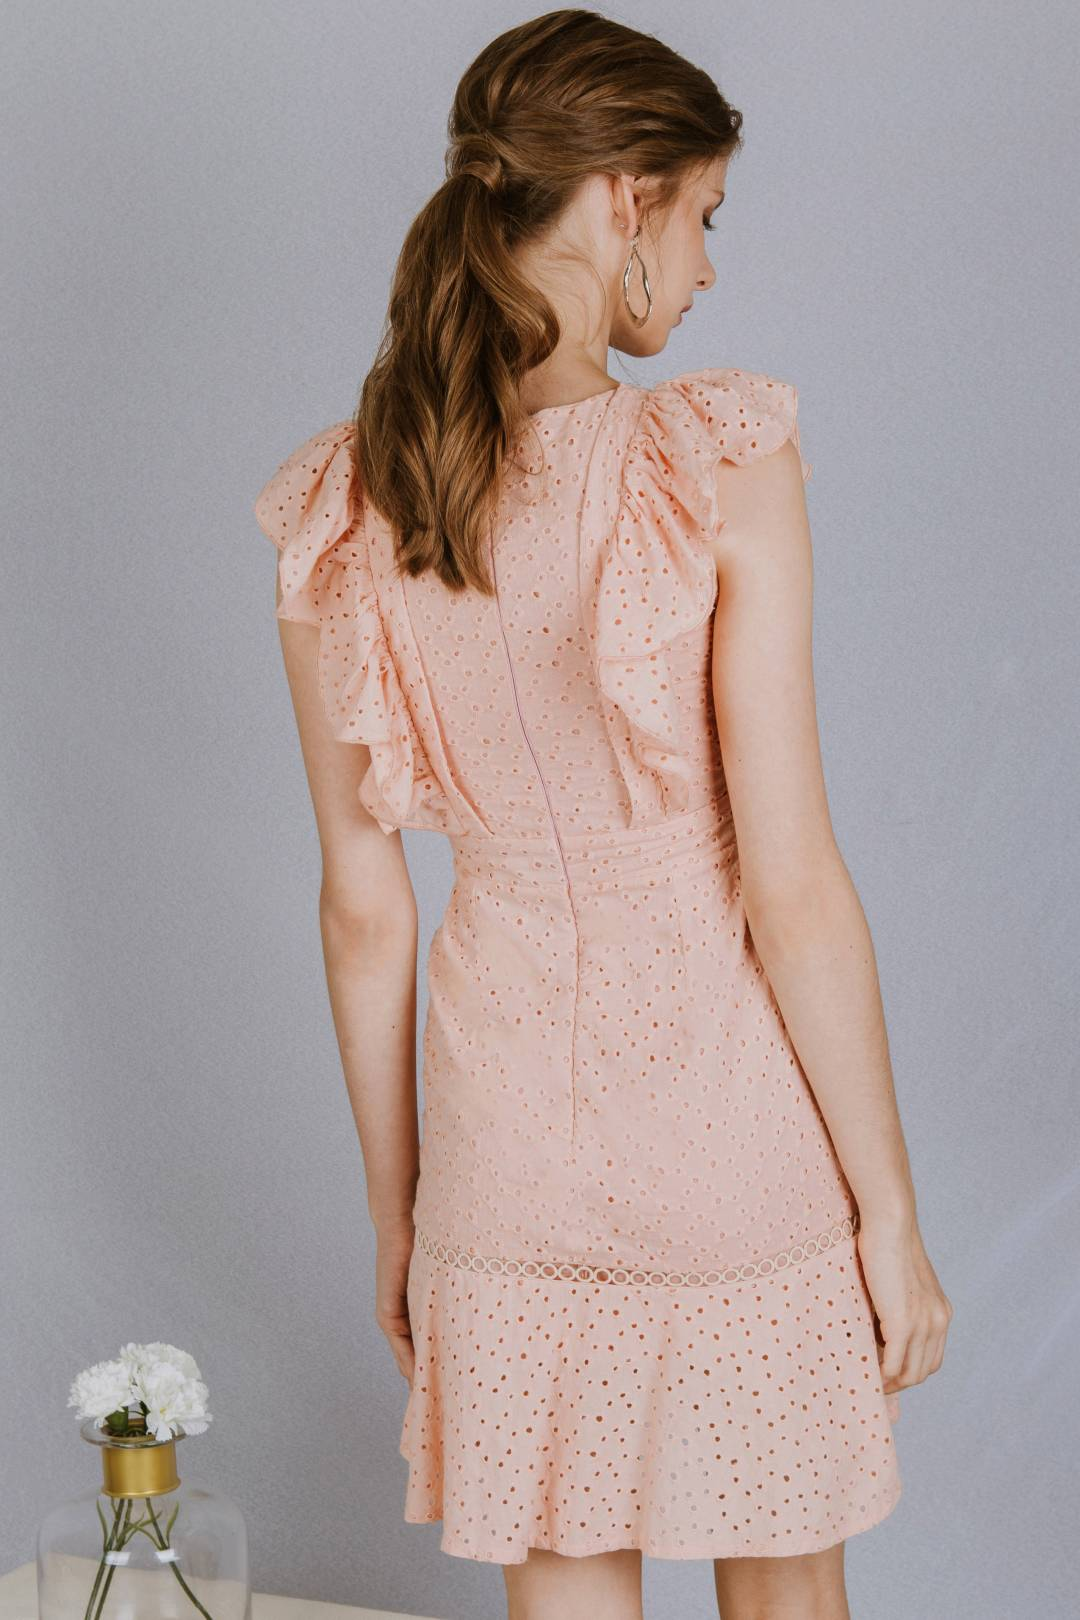 Venus Ruffle Crochet Dress